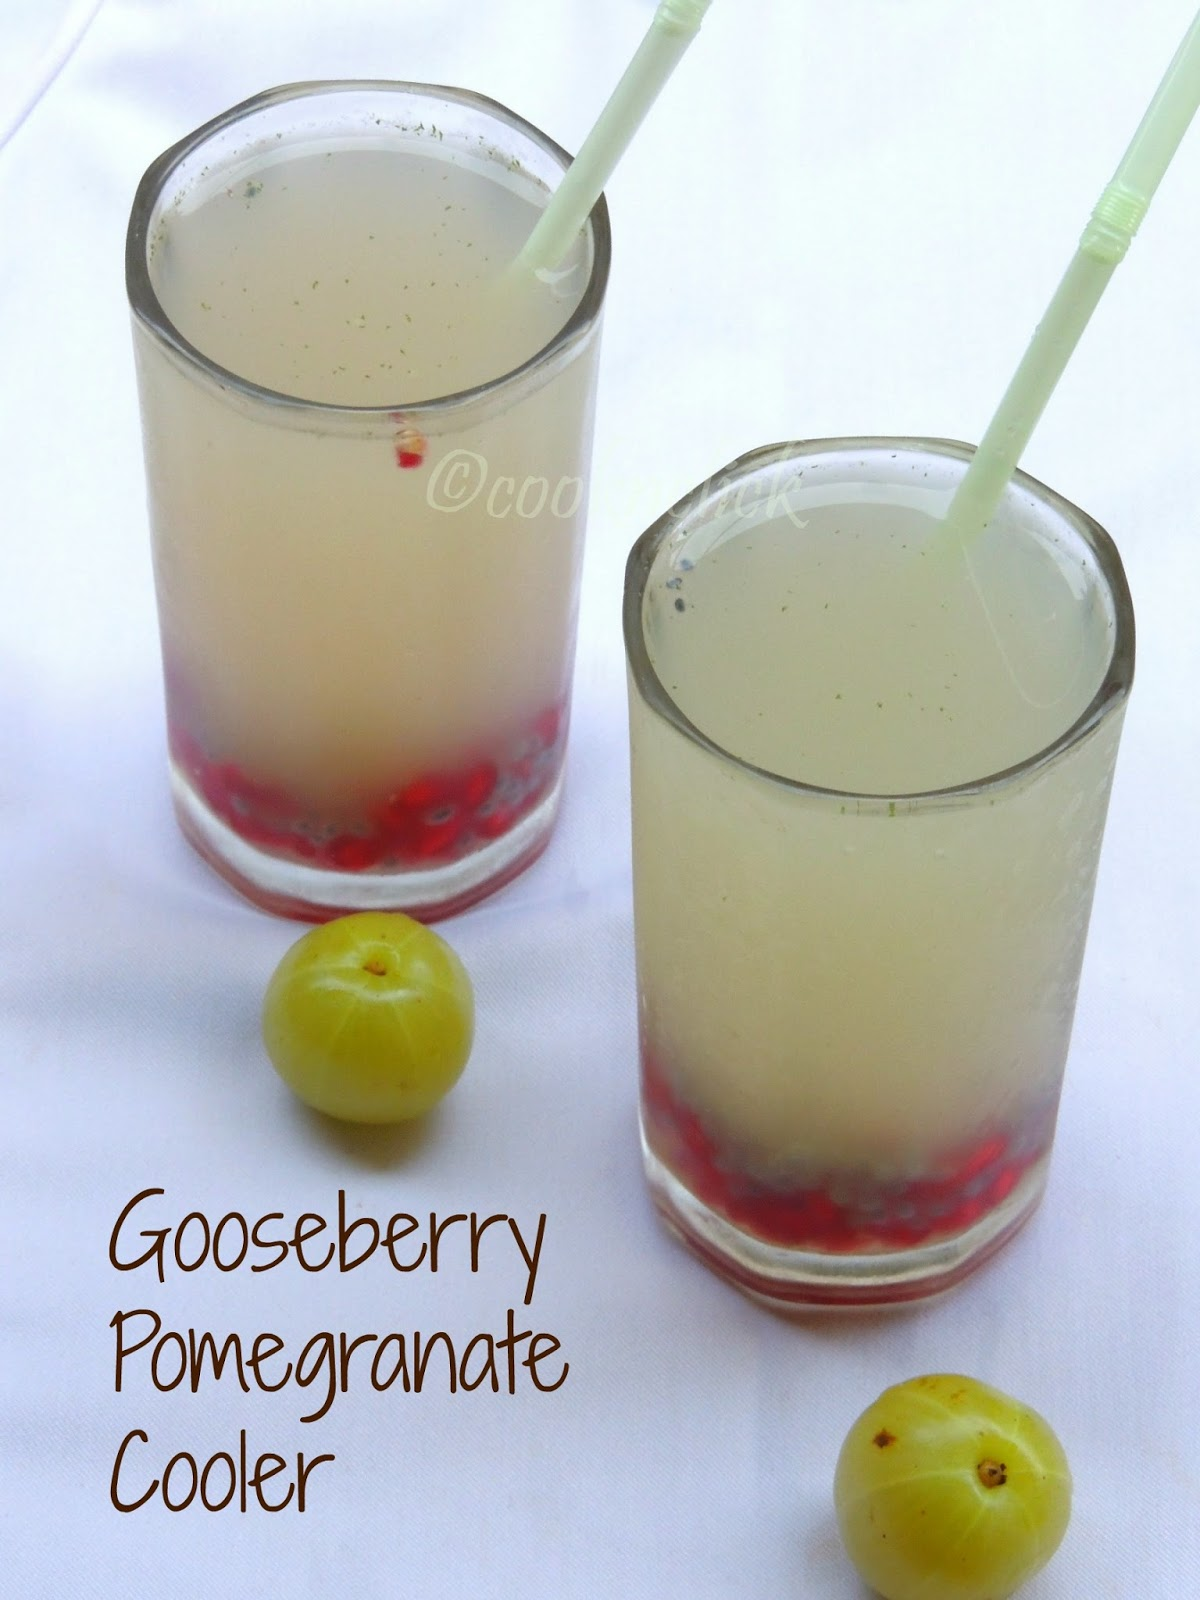 Gooseberry Pomegranate Cooler, Summer cooler